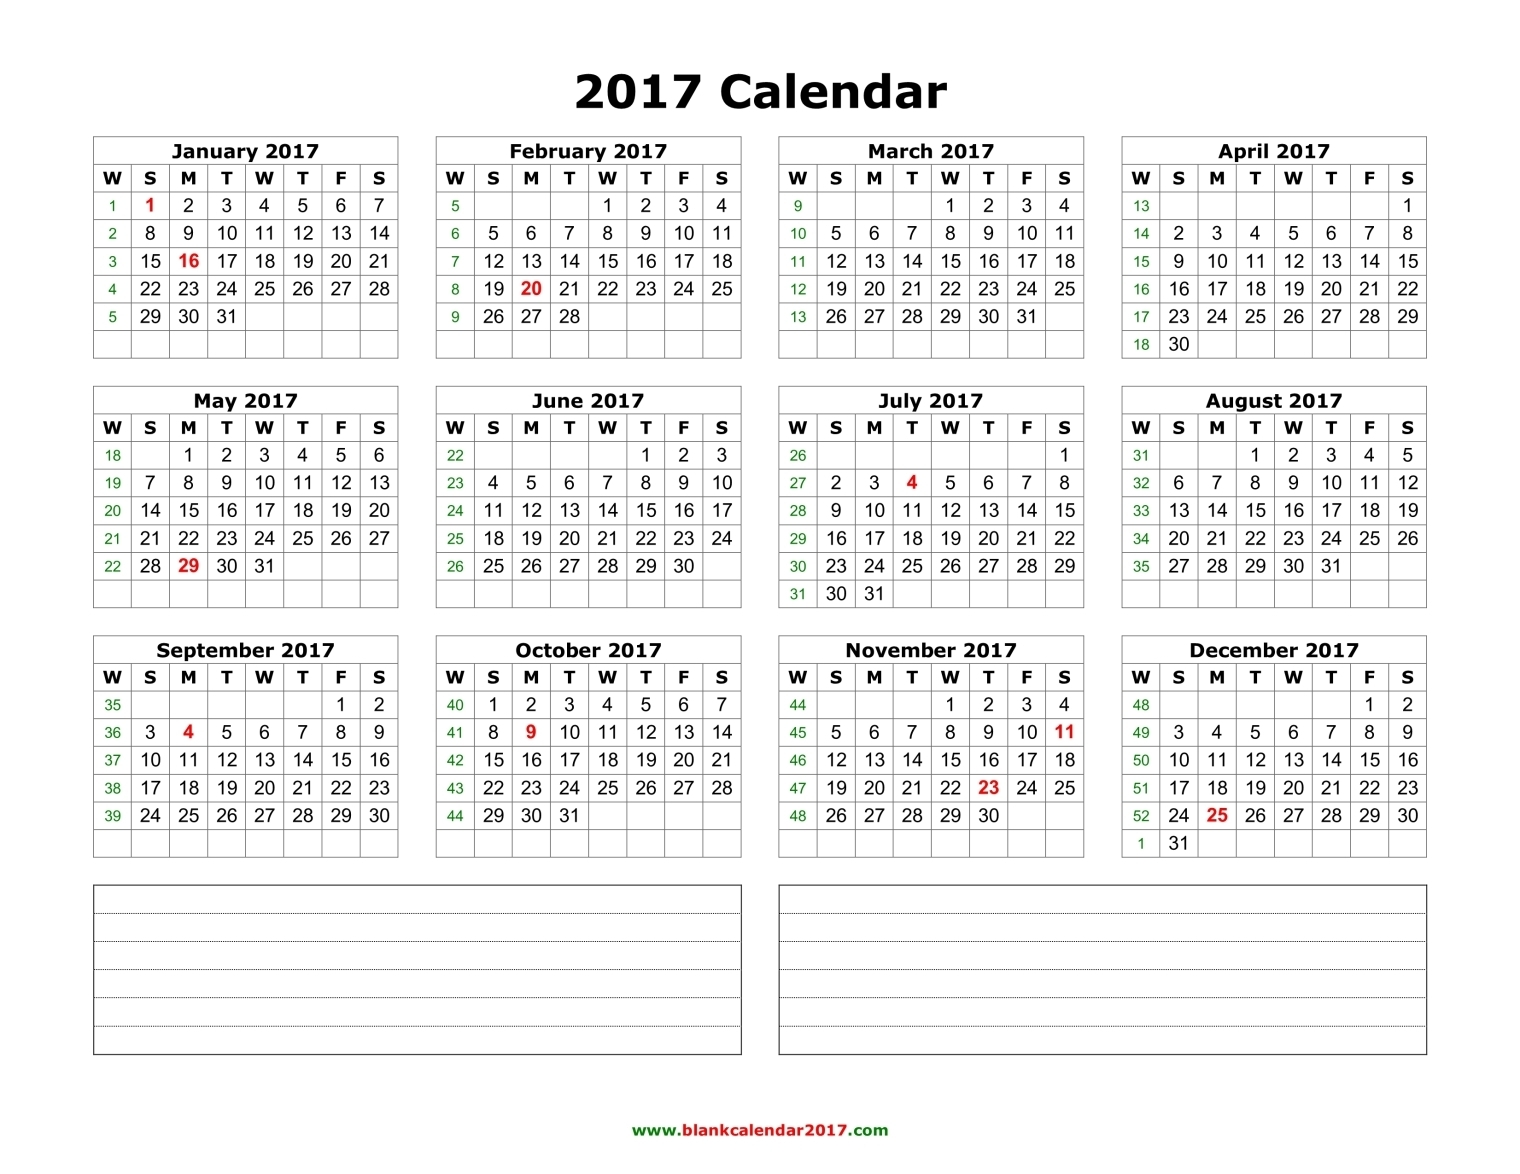 Free January 2017 Calendar (With US Holidays) – Printable Calendar